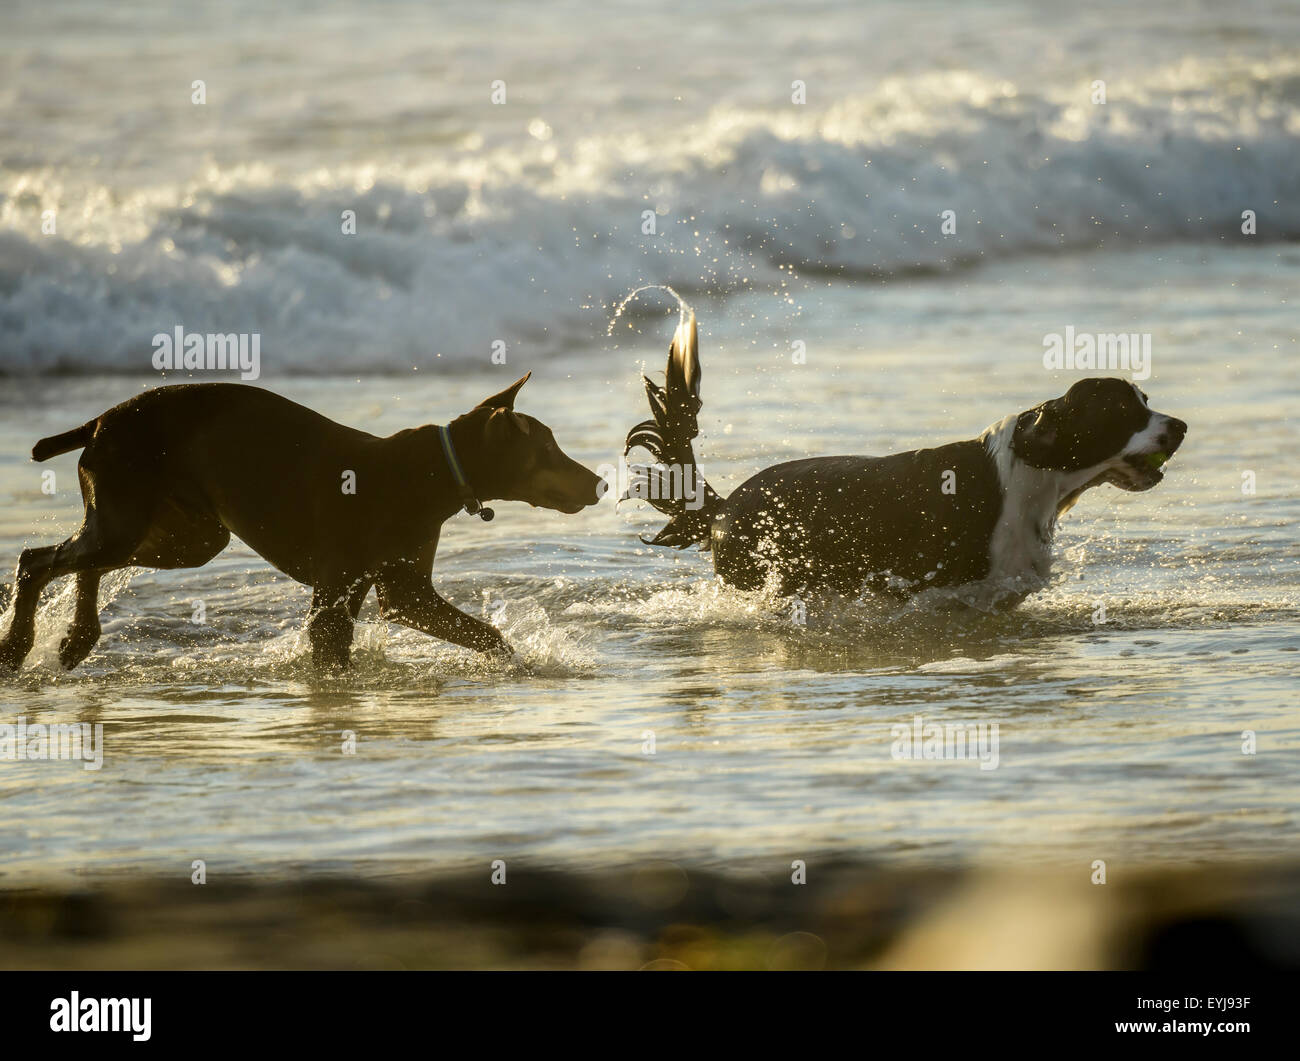 Doberman and Sapniel dogs play chase in surf - Stock Image